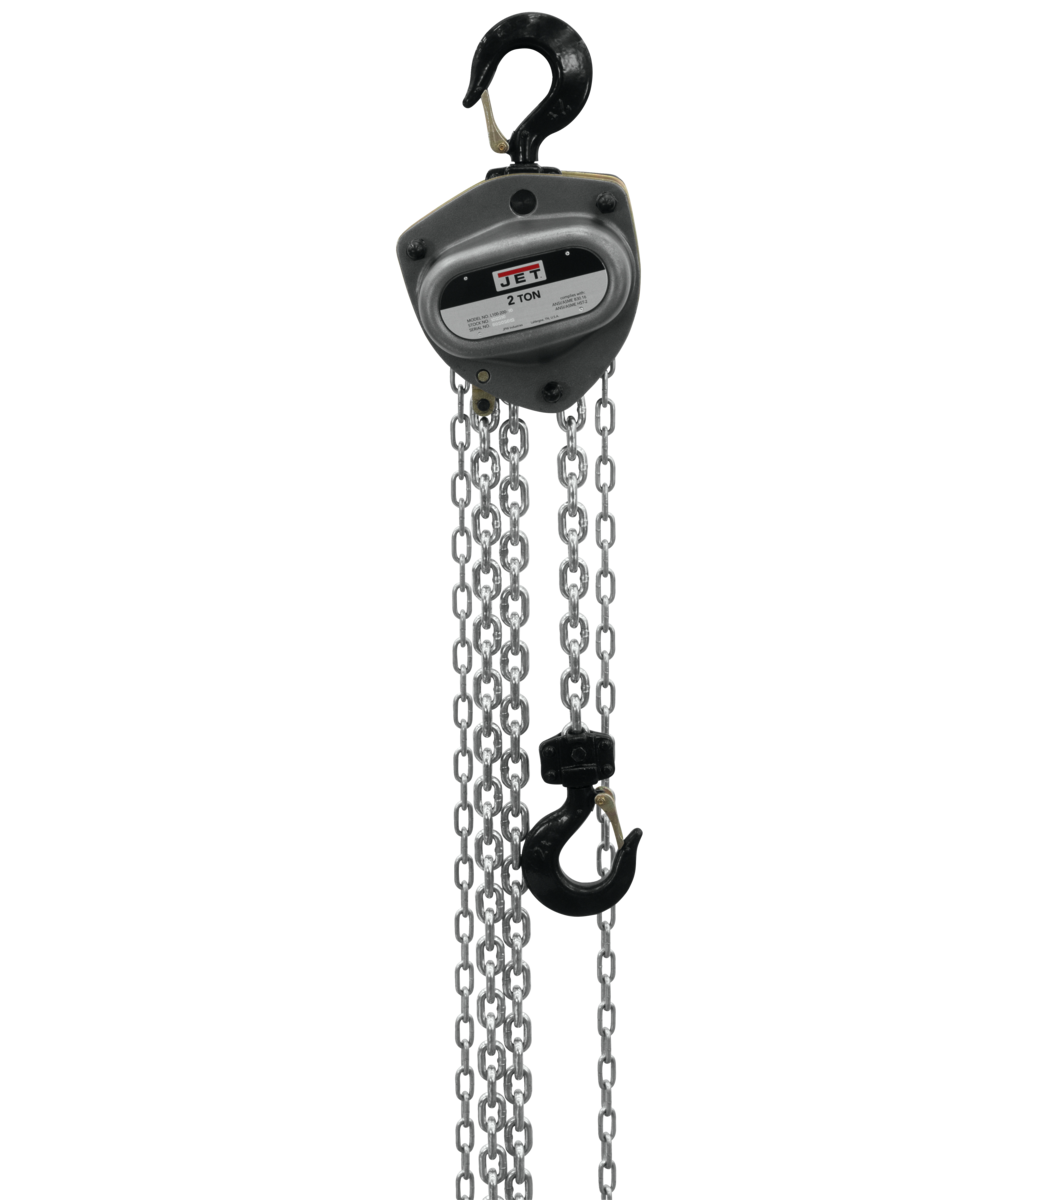 L-100-200WO-10, 2-Ton Hand Chain Hoist With 10' Lift & Overload Protection